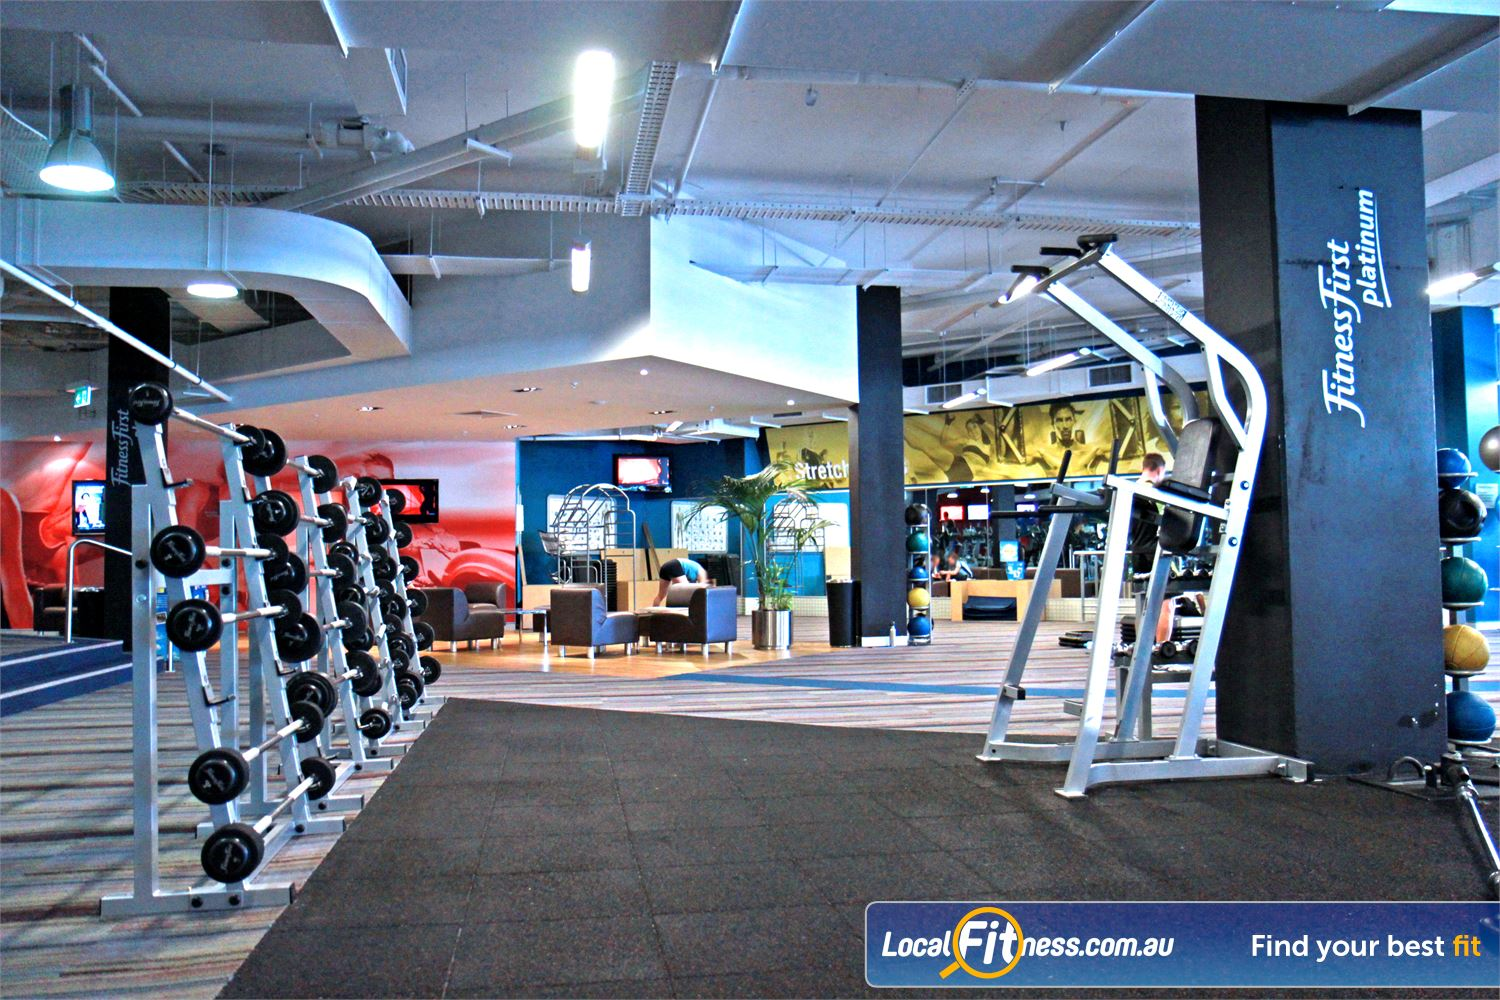 Goodlife Health Clubs Subiaco Feel the spacious comfort of Goodlife gym in Subiaco.